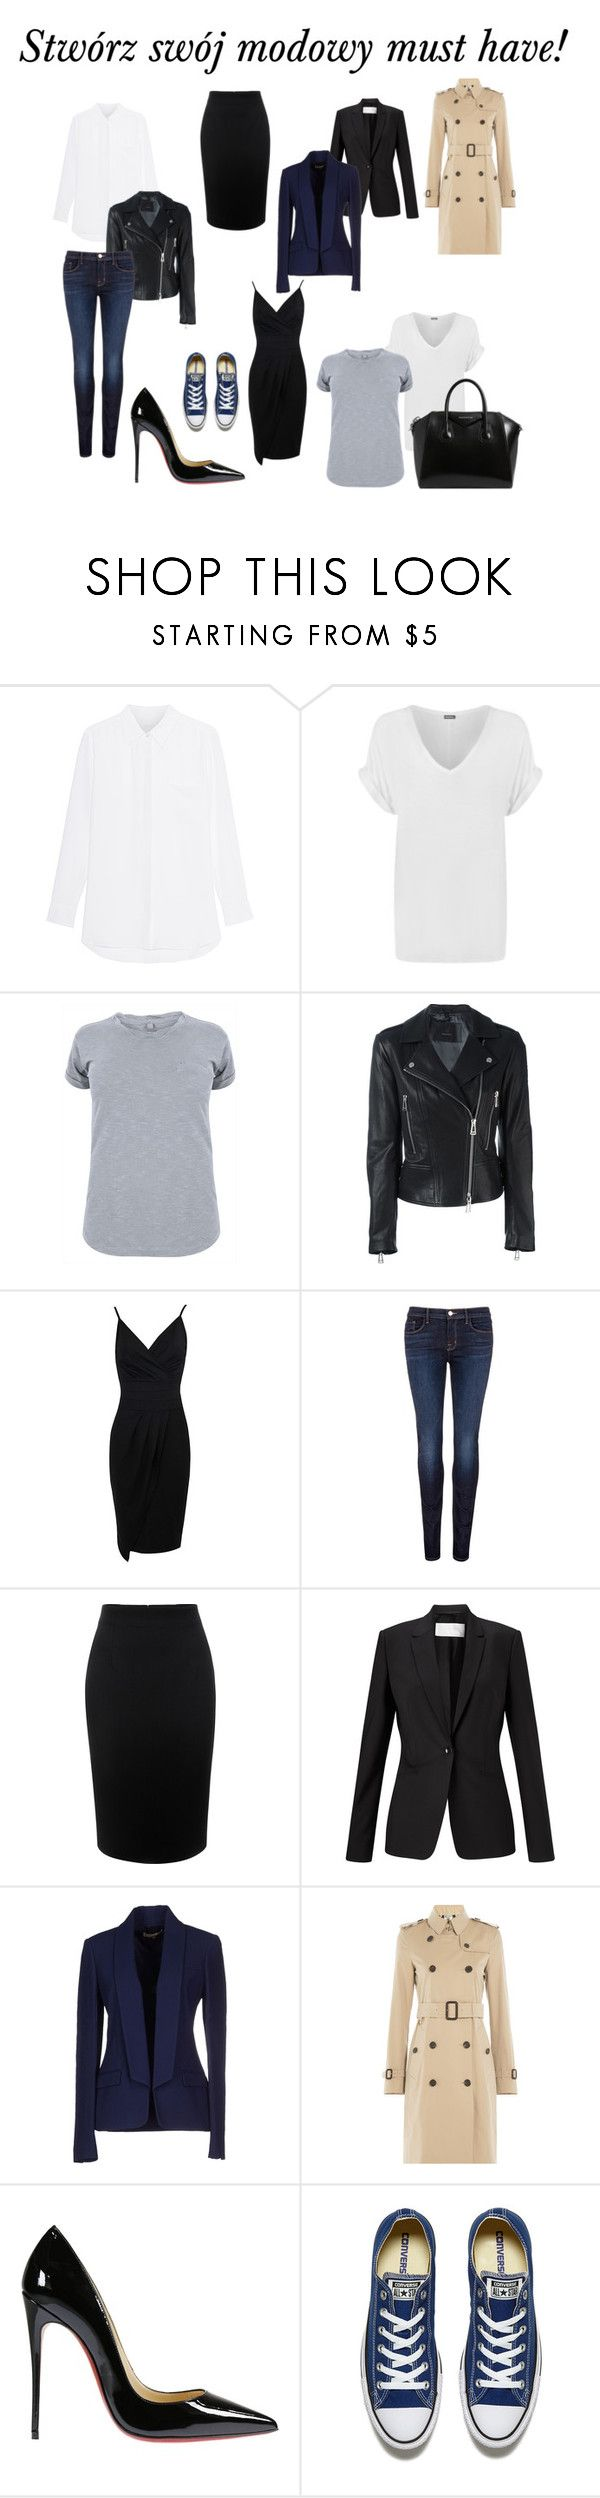 Swórz ze mną swój modowy must have! by marta-waluk on Polyvore featuring moda, WearAll, Burberry, Michael Kors, Belstaff, HUGO, Alexander McQueen, J Brand, Christian Louboutin and Converse